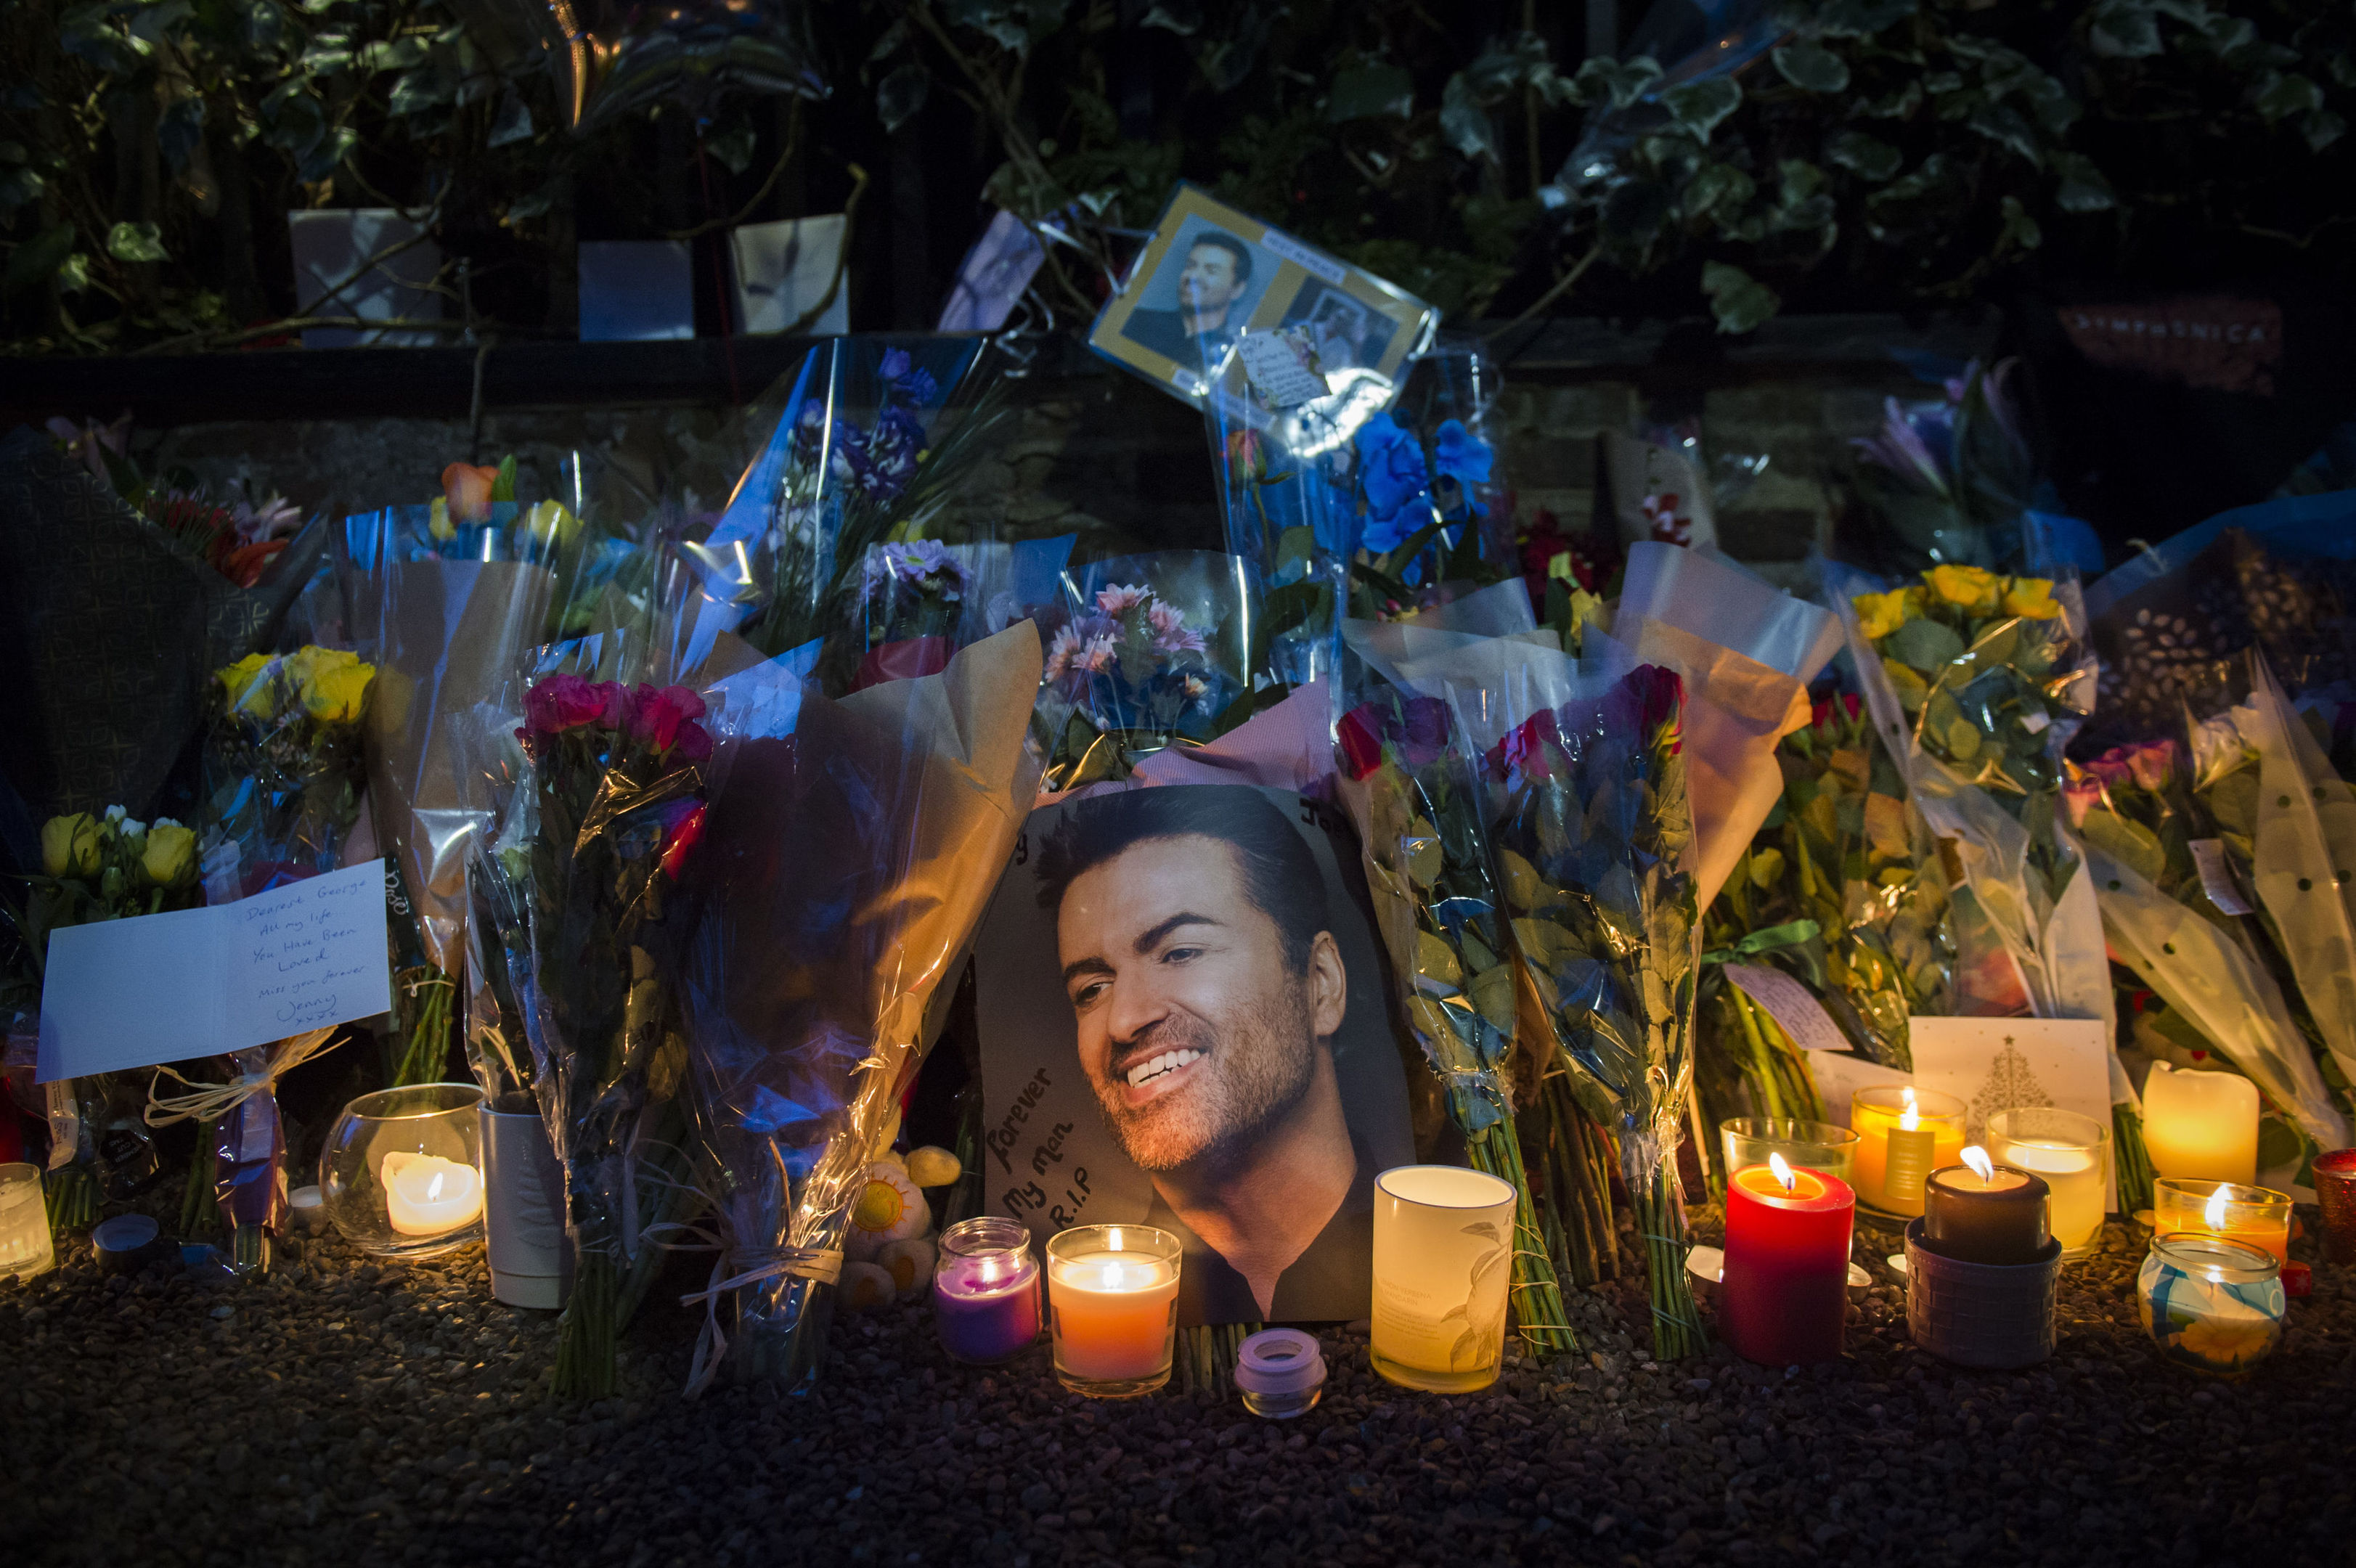 Tributes outside George Michael's house in Highgate, North London, UK, following the singer's death.